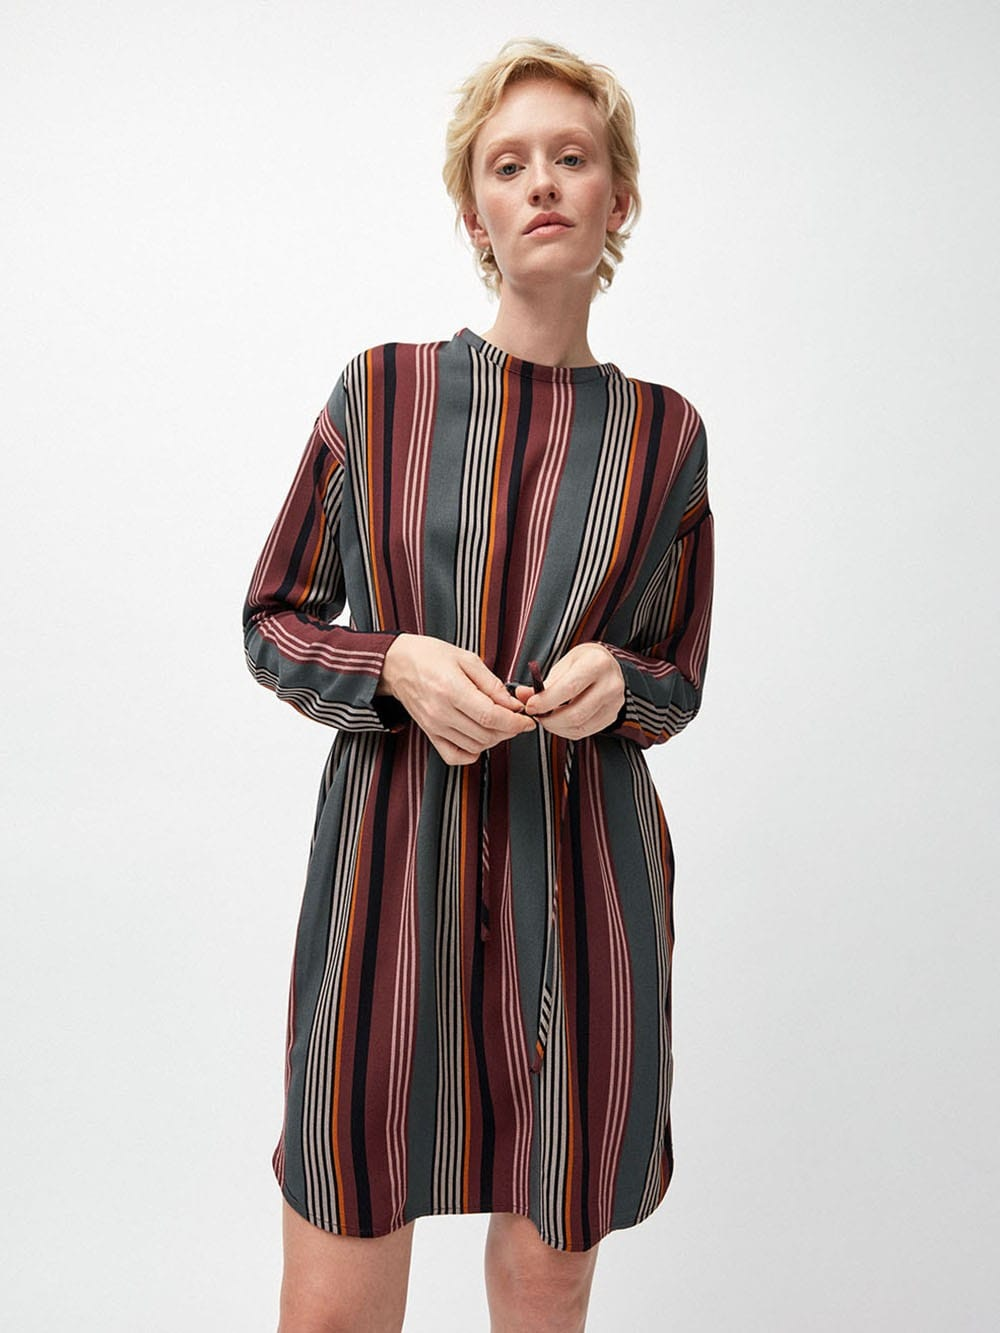 Vestit estampat de viscosa ECOVERO-Edurnaa Clustered Stripes